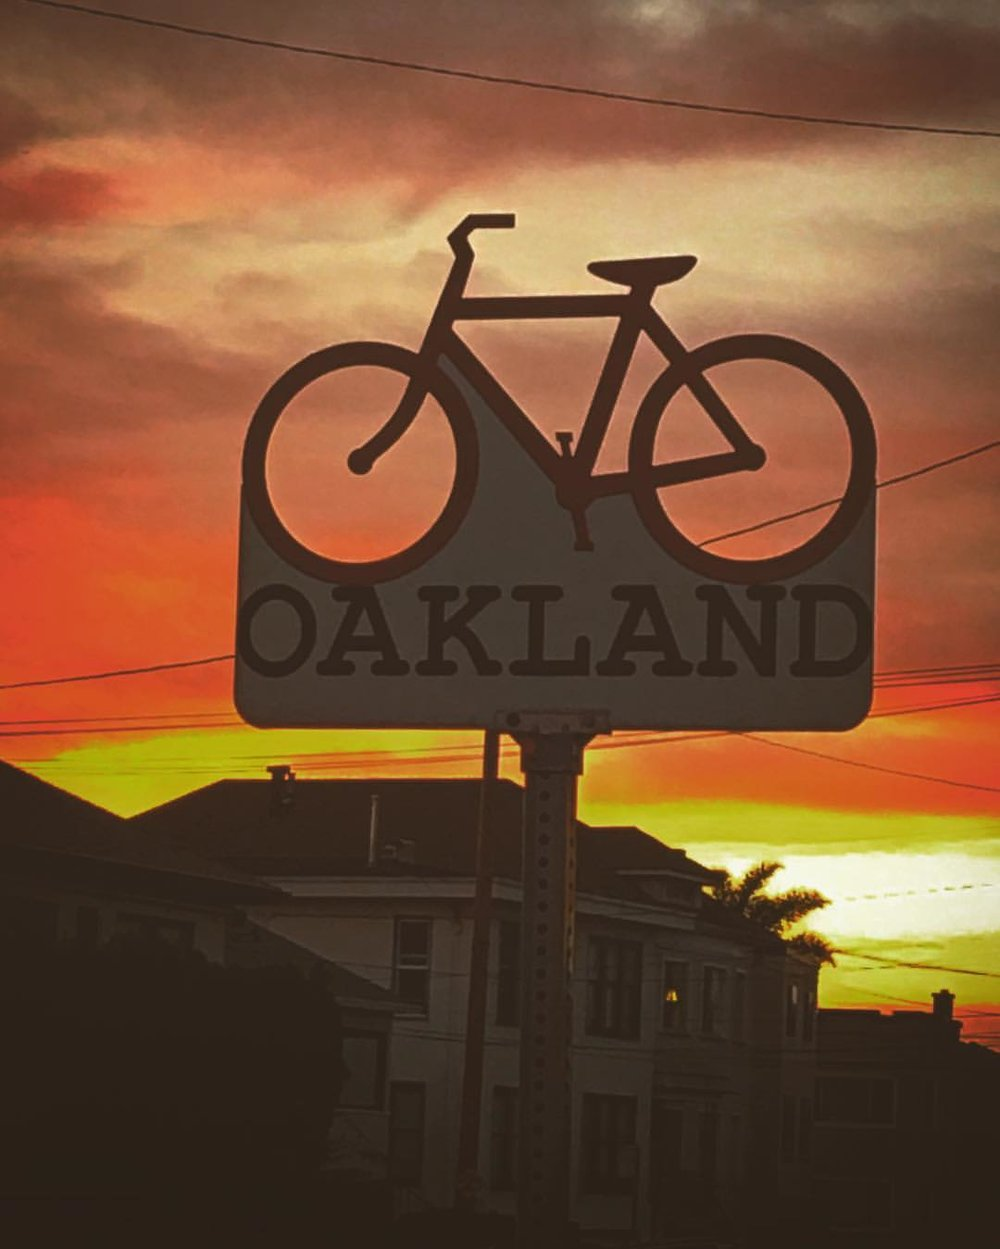 #Sunsets in #Oakland 😎 (at Underwood Oakland)